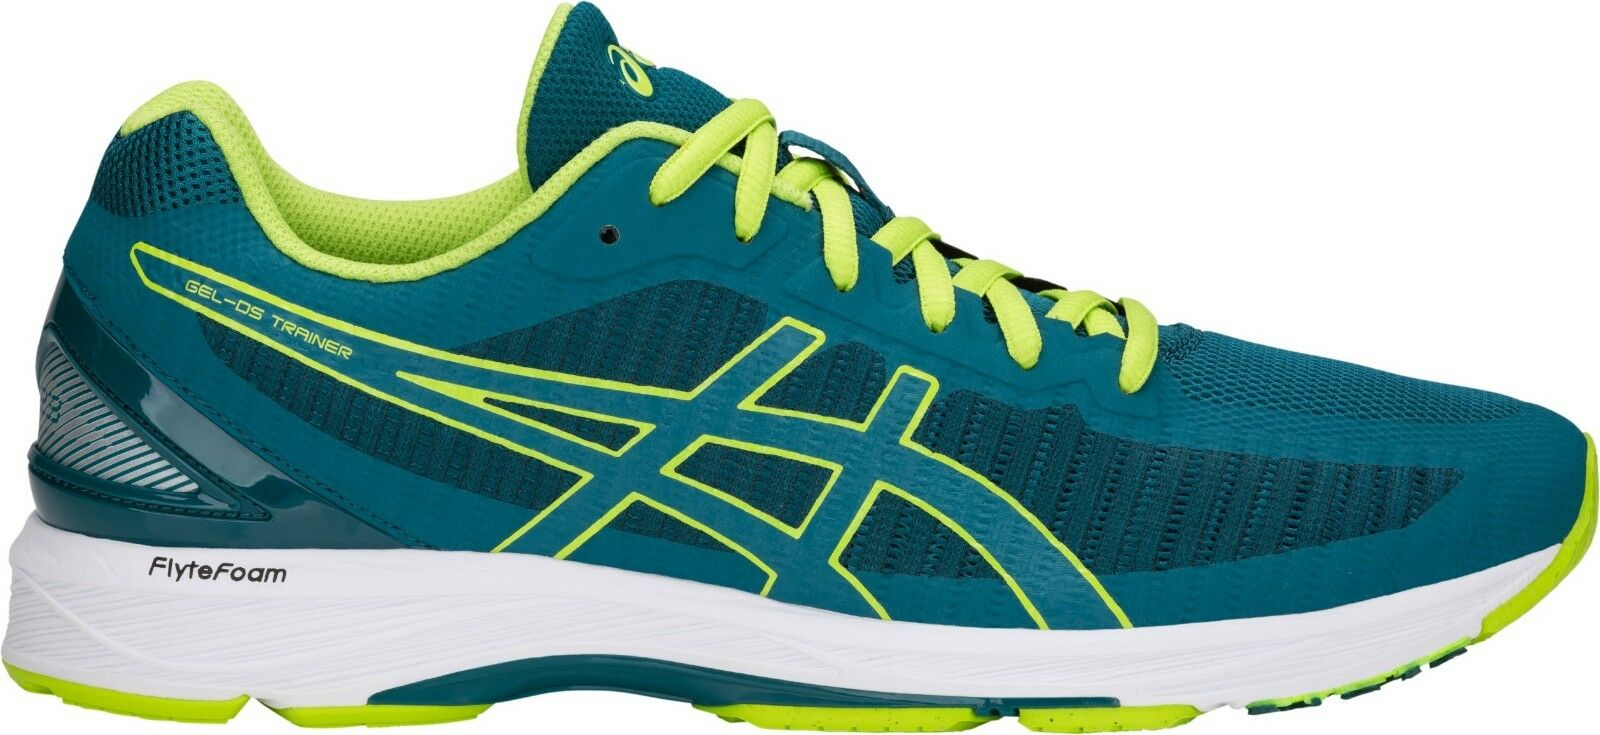 **LATEST RELEASE** Asics Gel DS Trainer 23 Mens Running Shoes (D) (400)